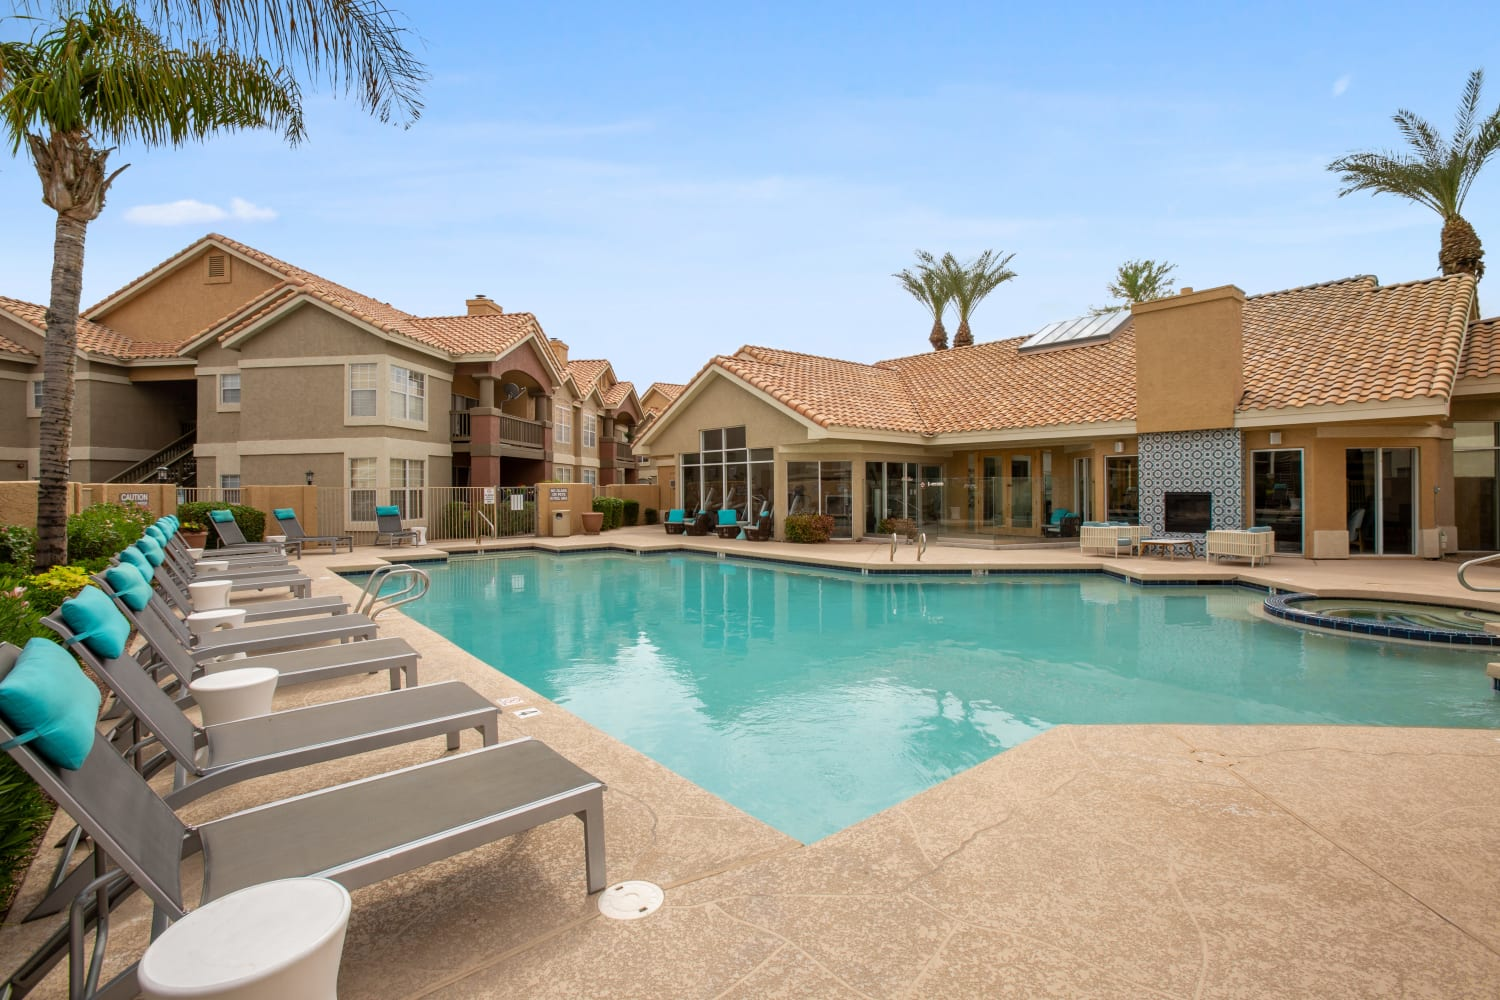 View of the pool with tanning chairs at Sonoran Vista Apartments in Scottsdale, Arizona